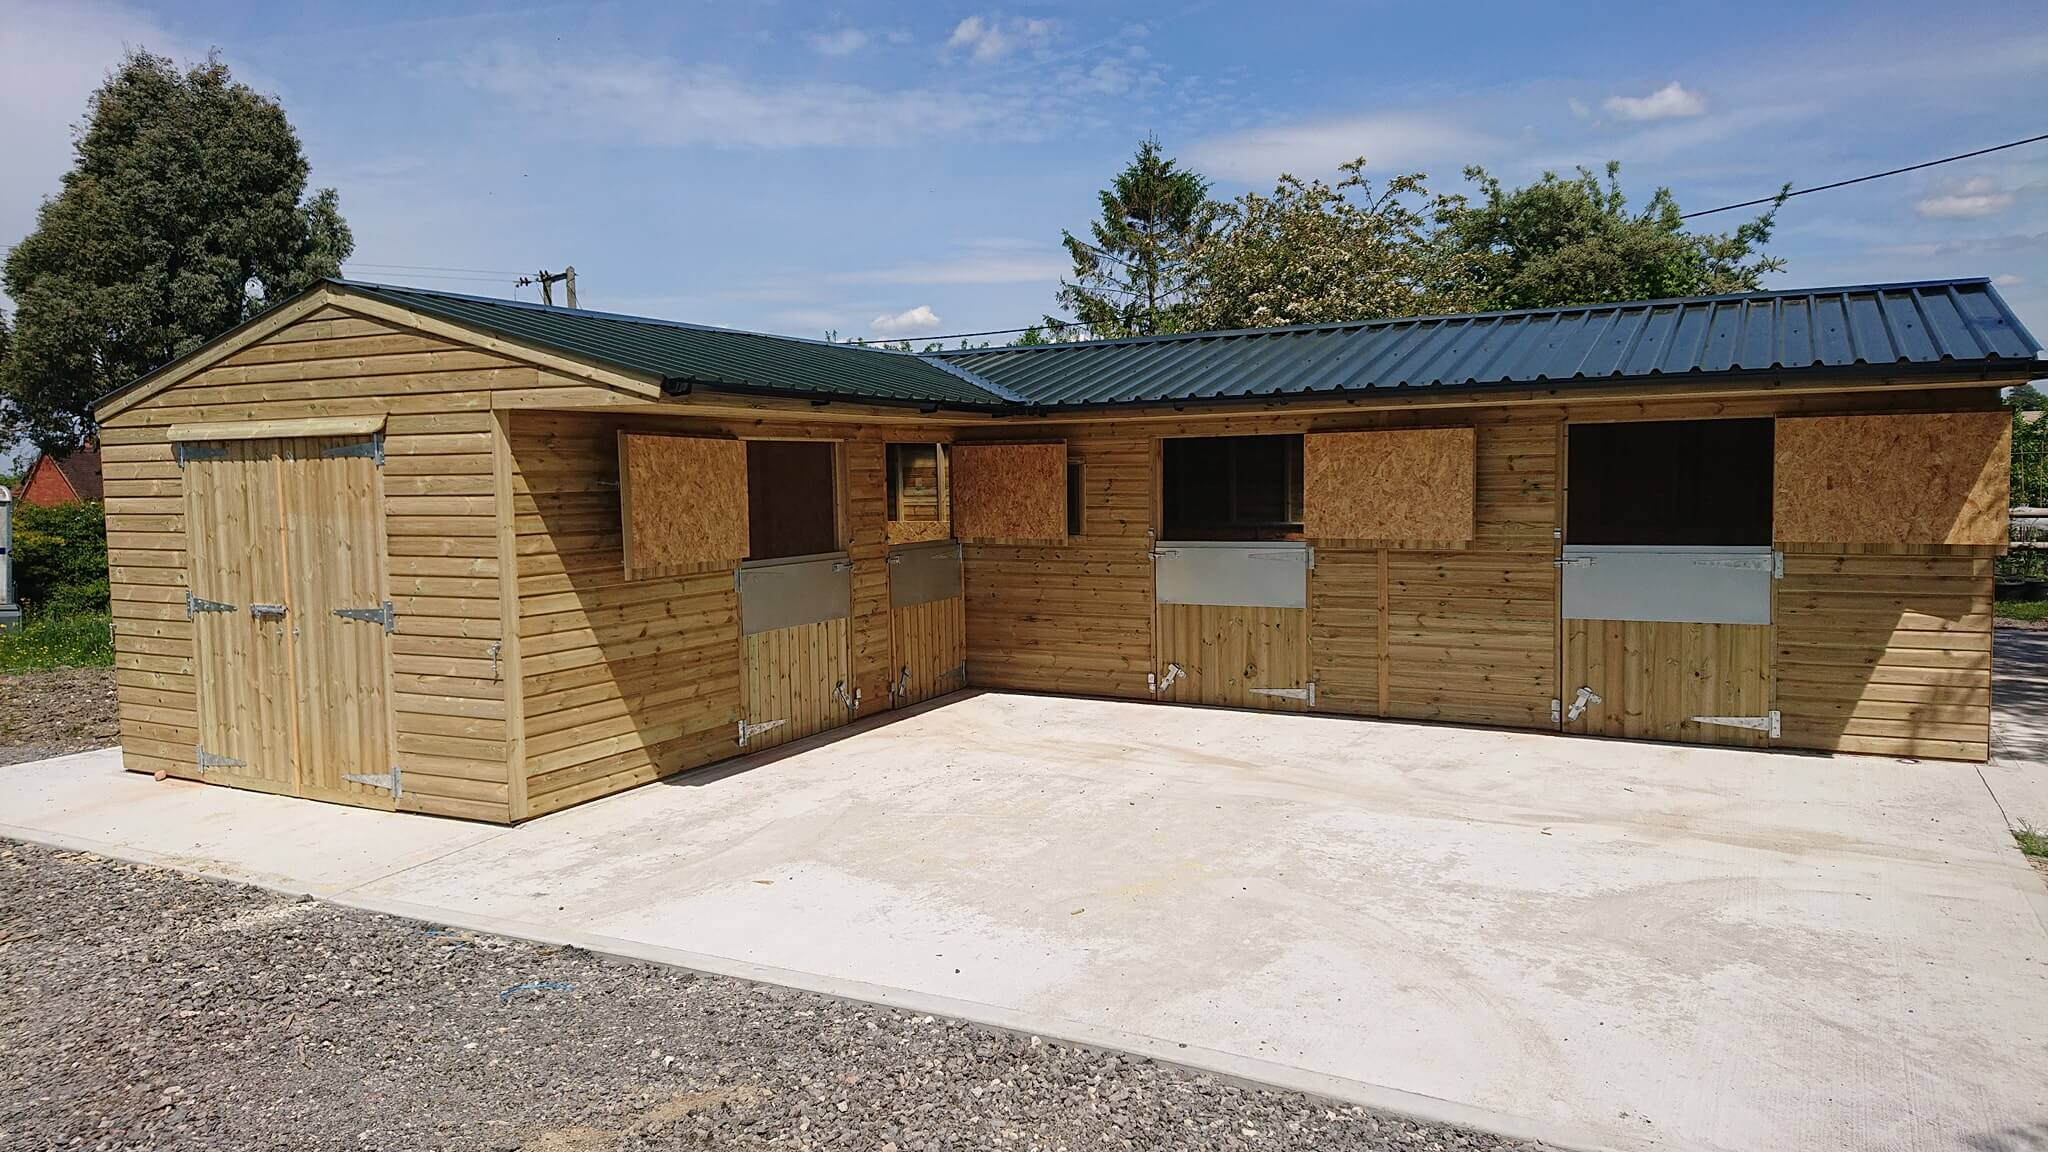 New stable block at Devonshire Stables